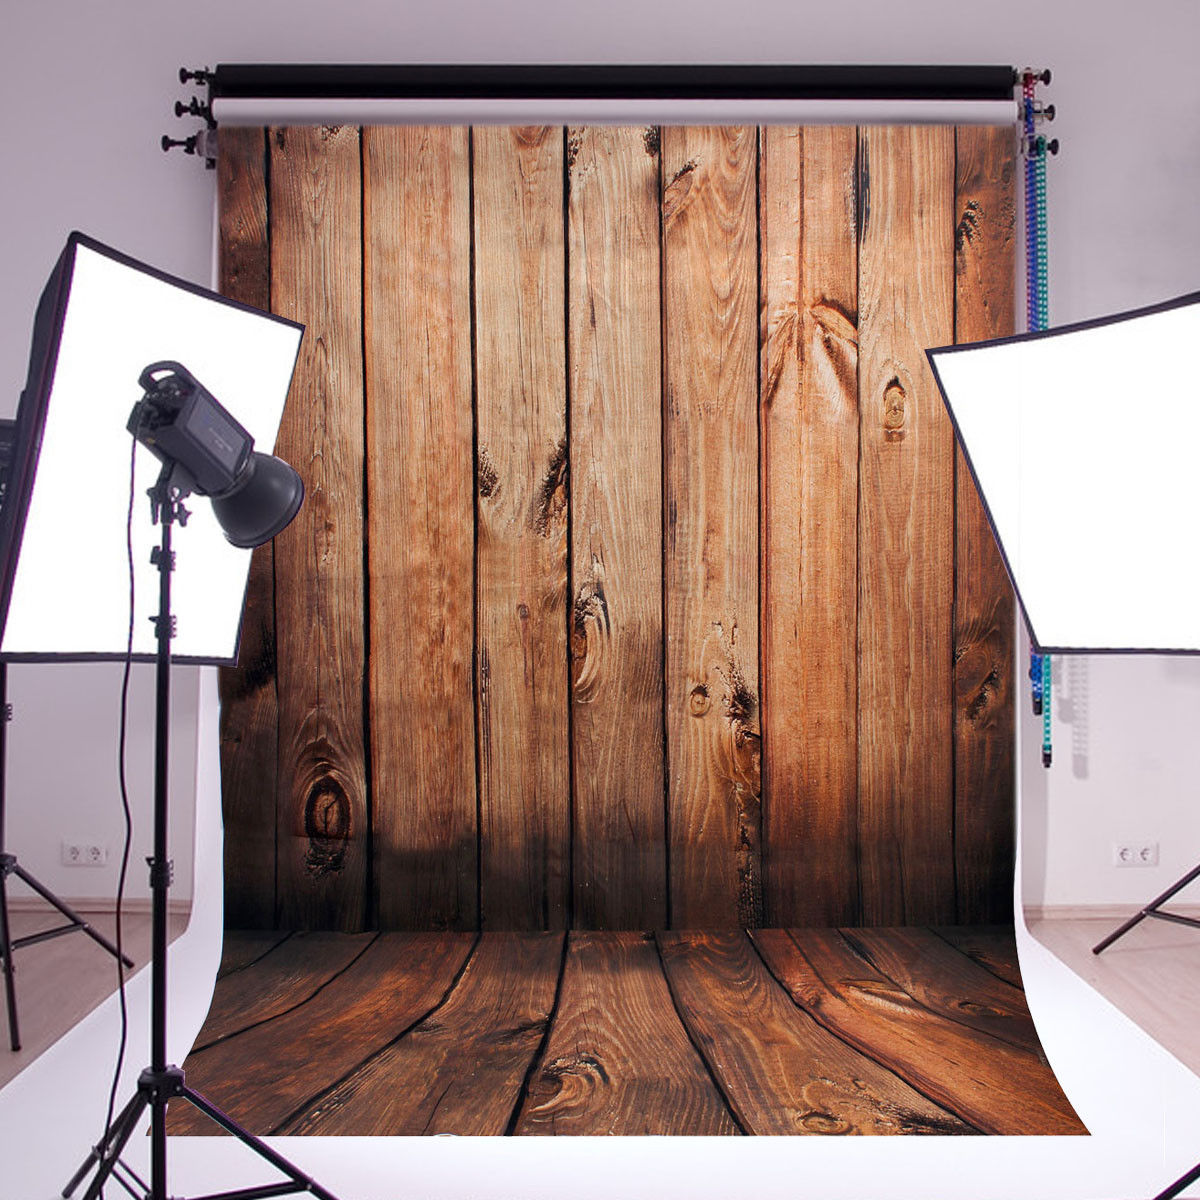 Photography Backdrops vinyl background for photo studio vintage wood baby background 2.1*1.5m Hot Sale vintage flowers wedding photography background light wood floor vintage vinyl backdrops for photography custom photo studio prop